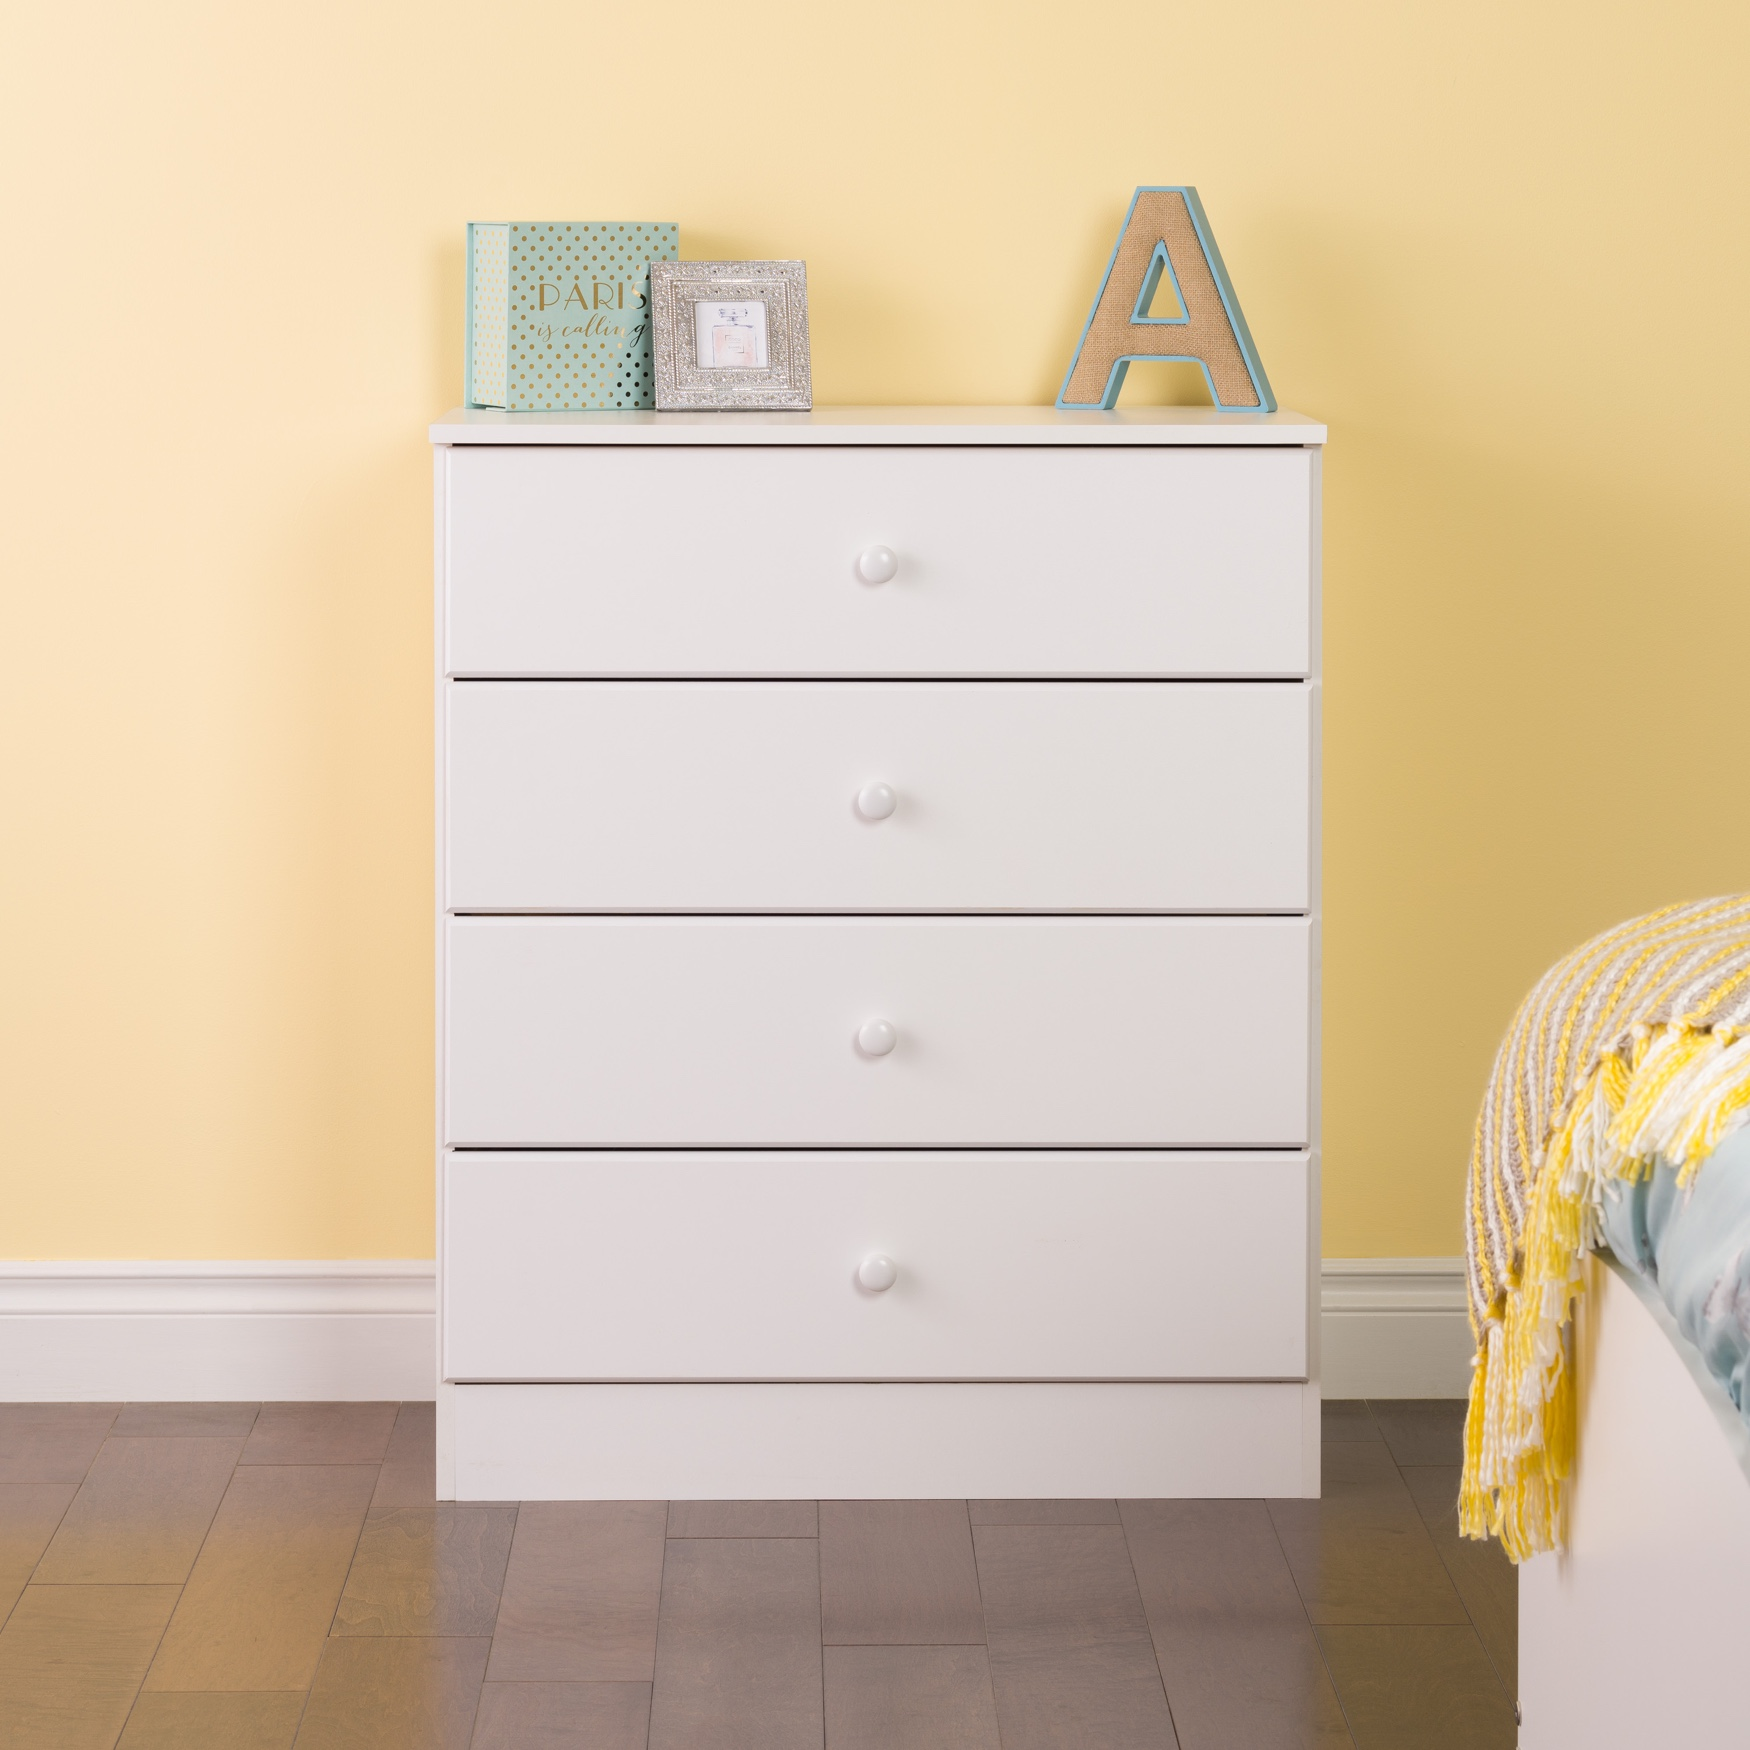 Astrid 4-Drawer Dresser with Acrylic Knobs, White, WHITE